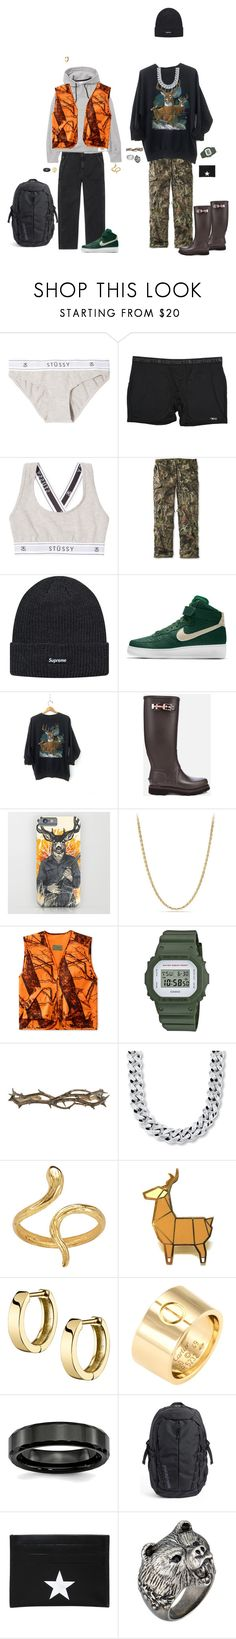 """Hunting Chique"" by kevin-whitcanack on Polyvore featuring Carhartt, L.L.Bean, NIKE, Kingsman, David Yurman, G-Shock, Pearls Before Swine, Madina Visconti di Modrone, Cartier and Patagonia"